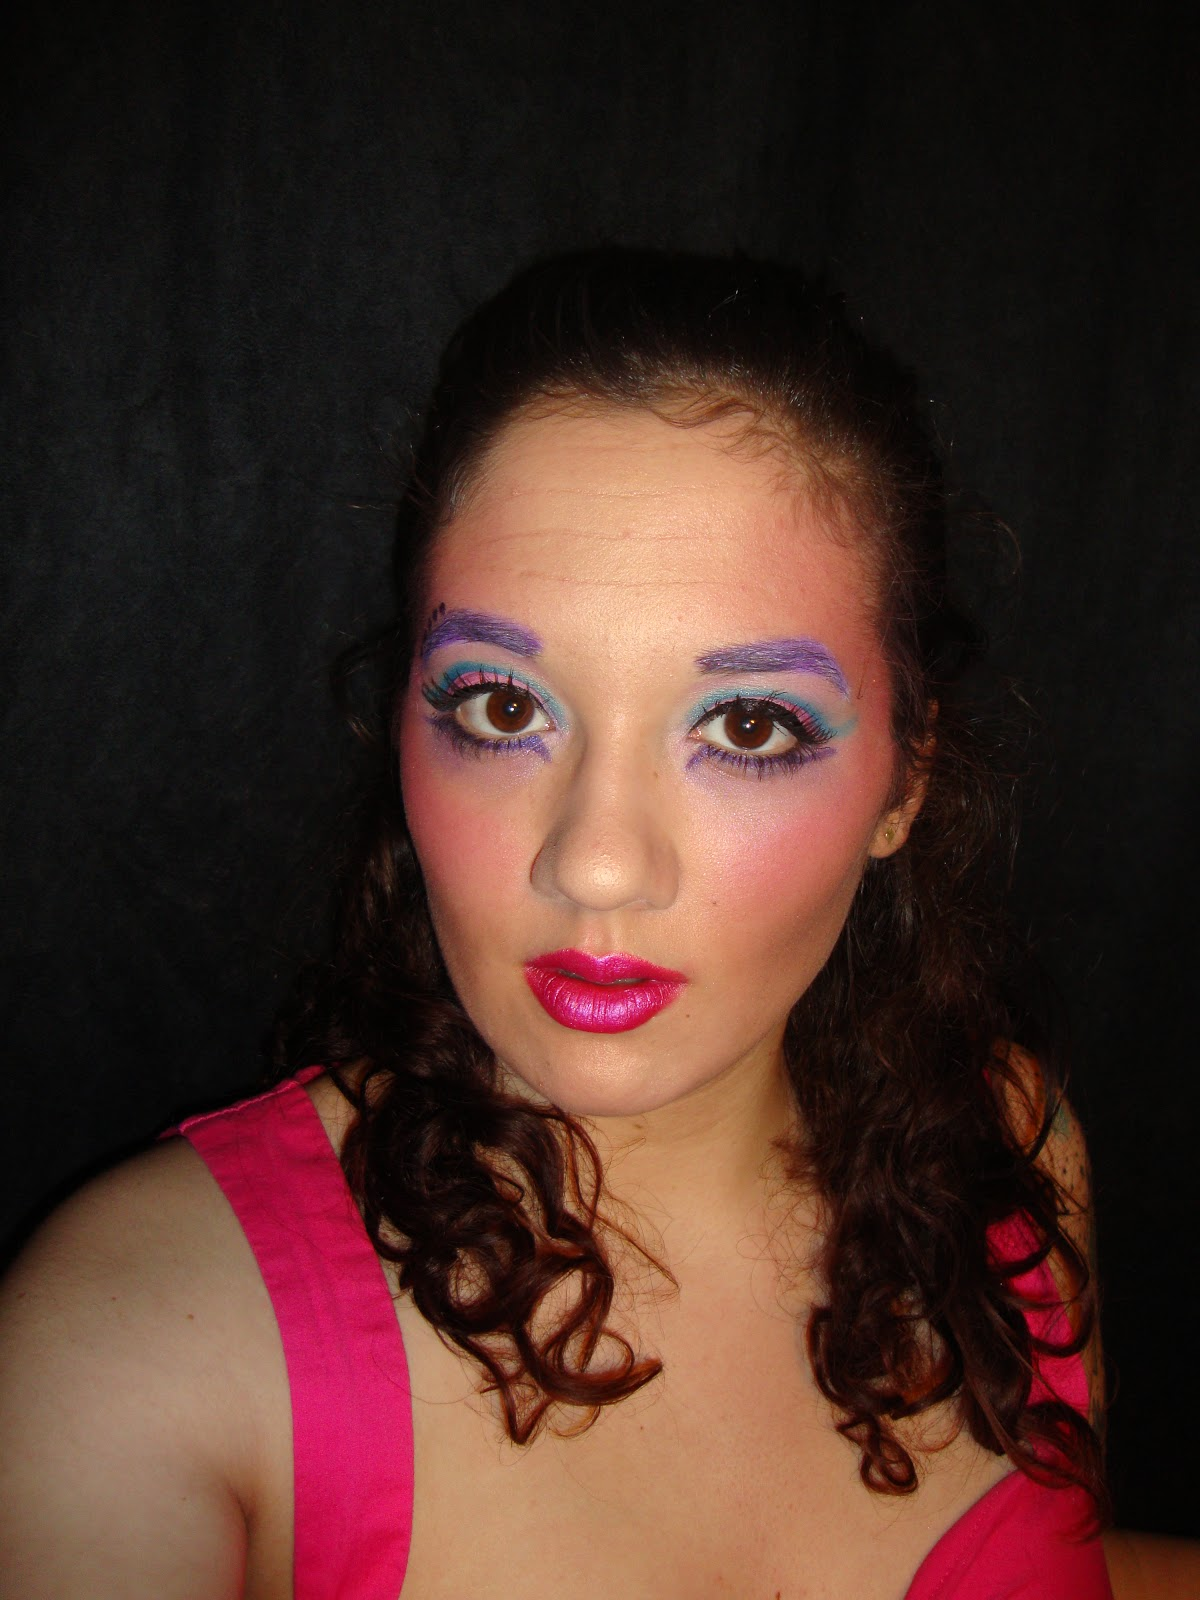 Cosmetic Reviews By Posh: Crazy Makeup On A Rainy Day